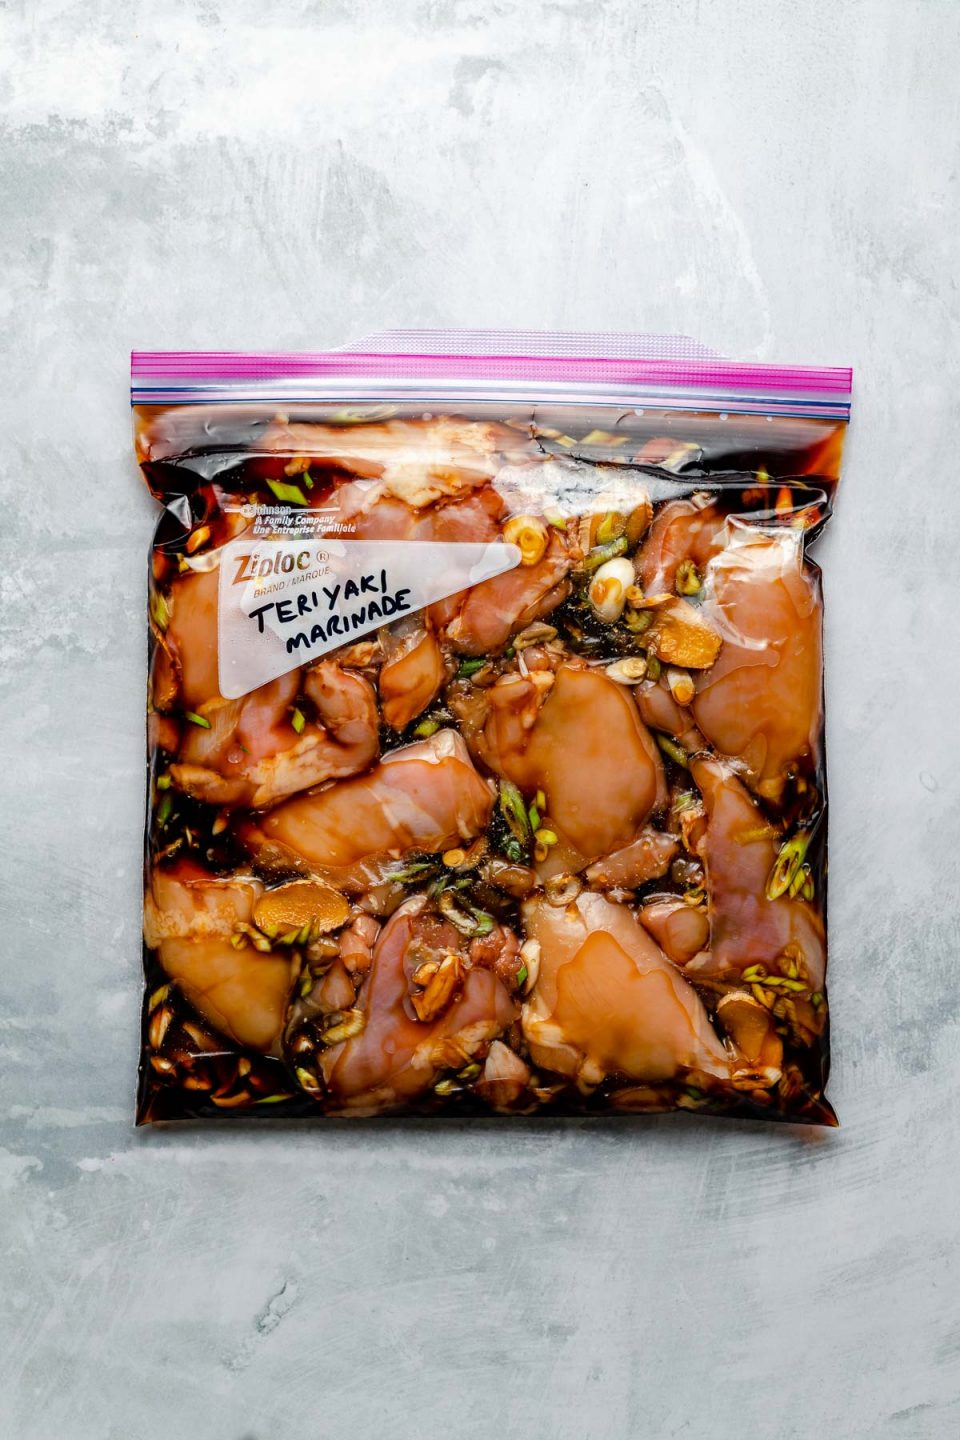 """Chicken thighs in a Ziploc bag, marinating in Teriyaki marinade. The bag sits atop a light blue surface. """"Teriyaki Marinade"""" is penned in the bag's memo area."""